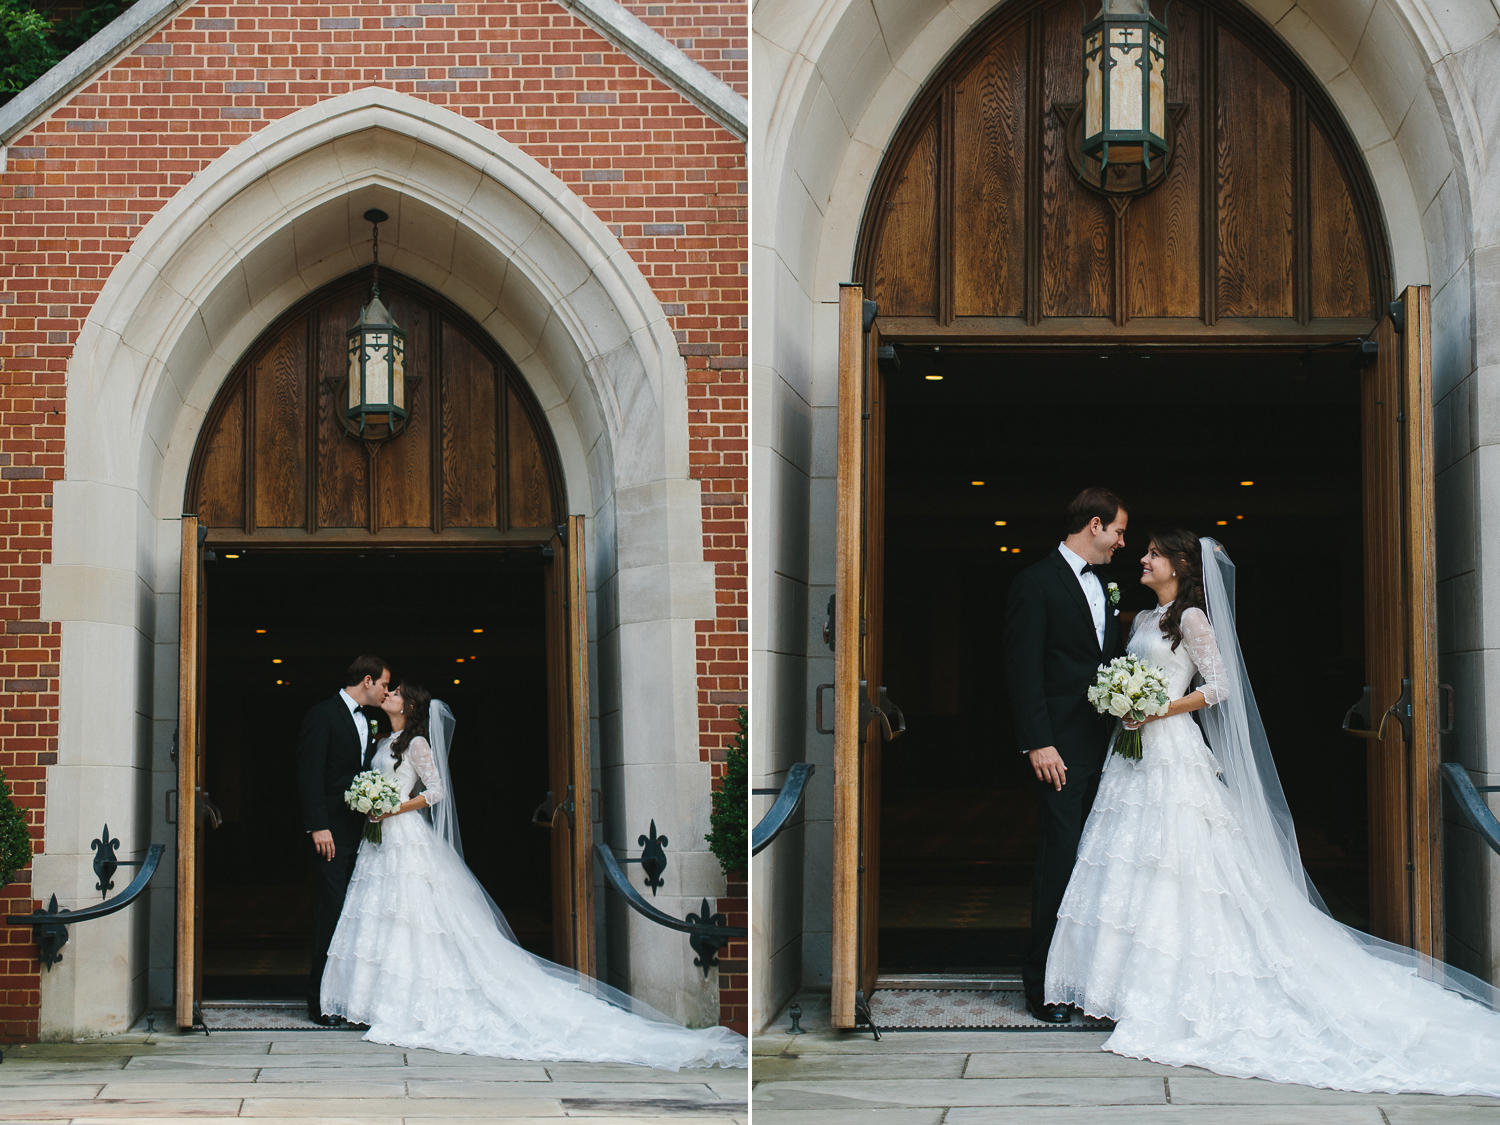 Bride and groom archway portrait